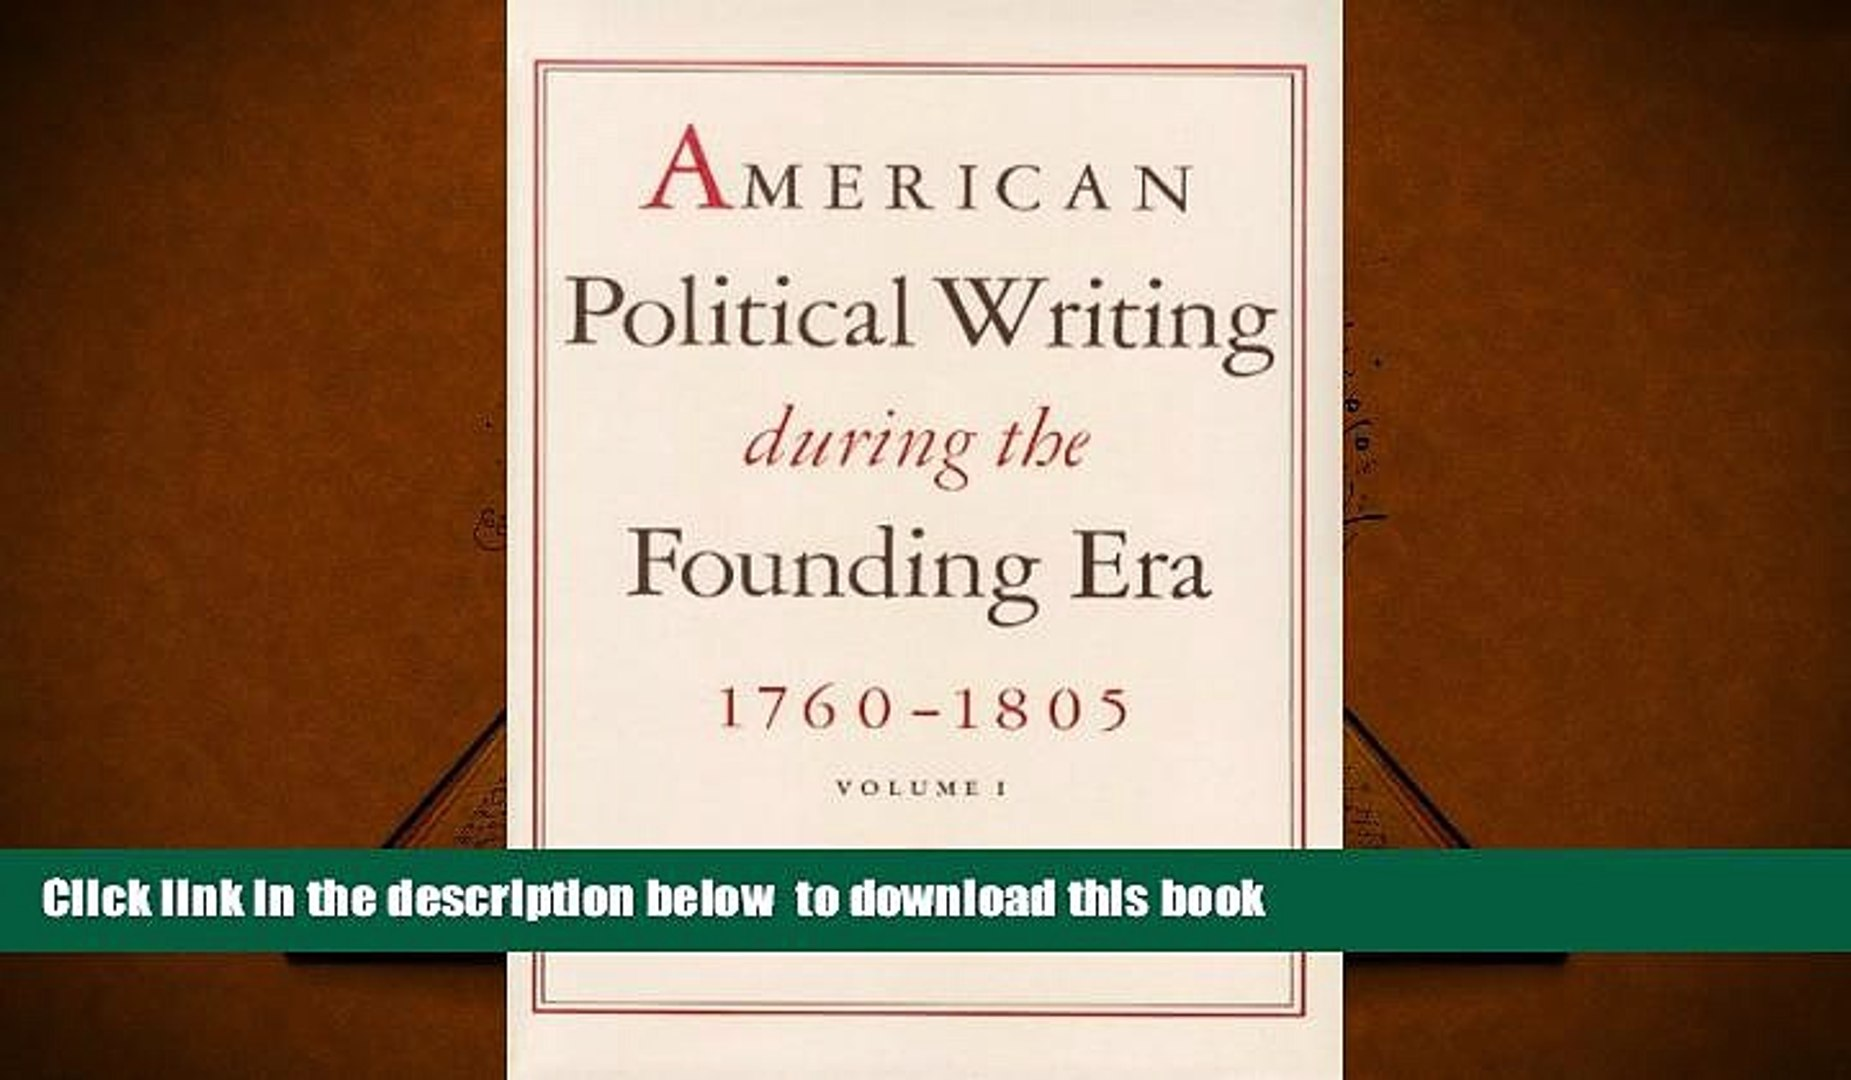 PDF [DOWNLOAD] American Political Writing During the Founding Era, 1760-1805, 2-Vol. Set Charles